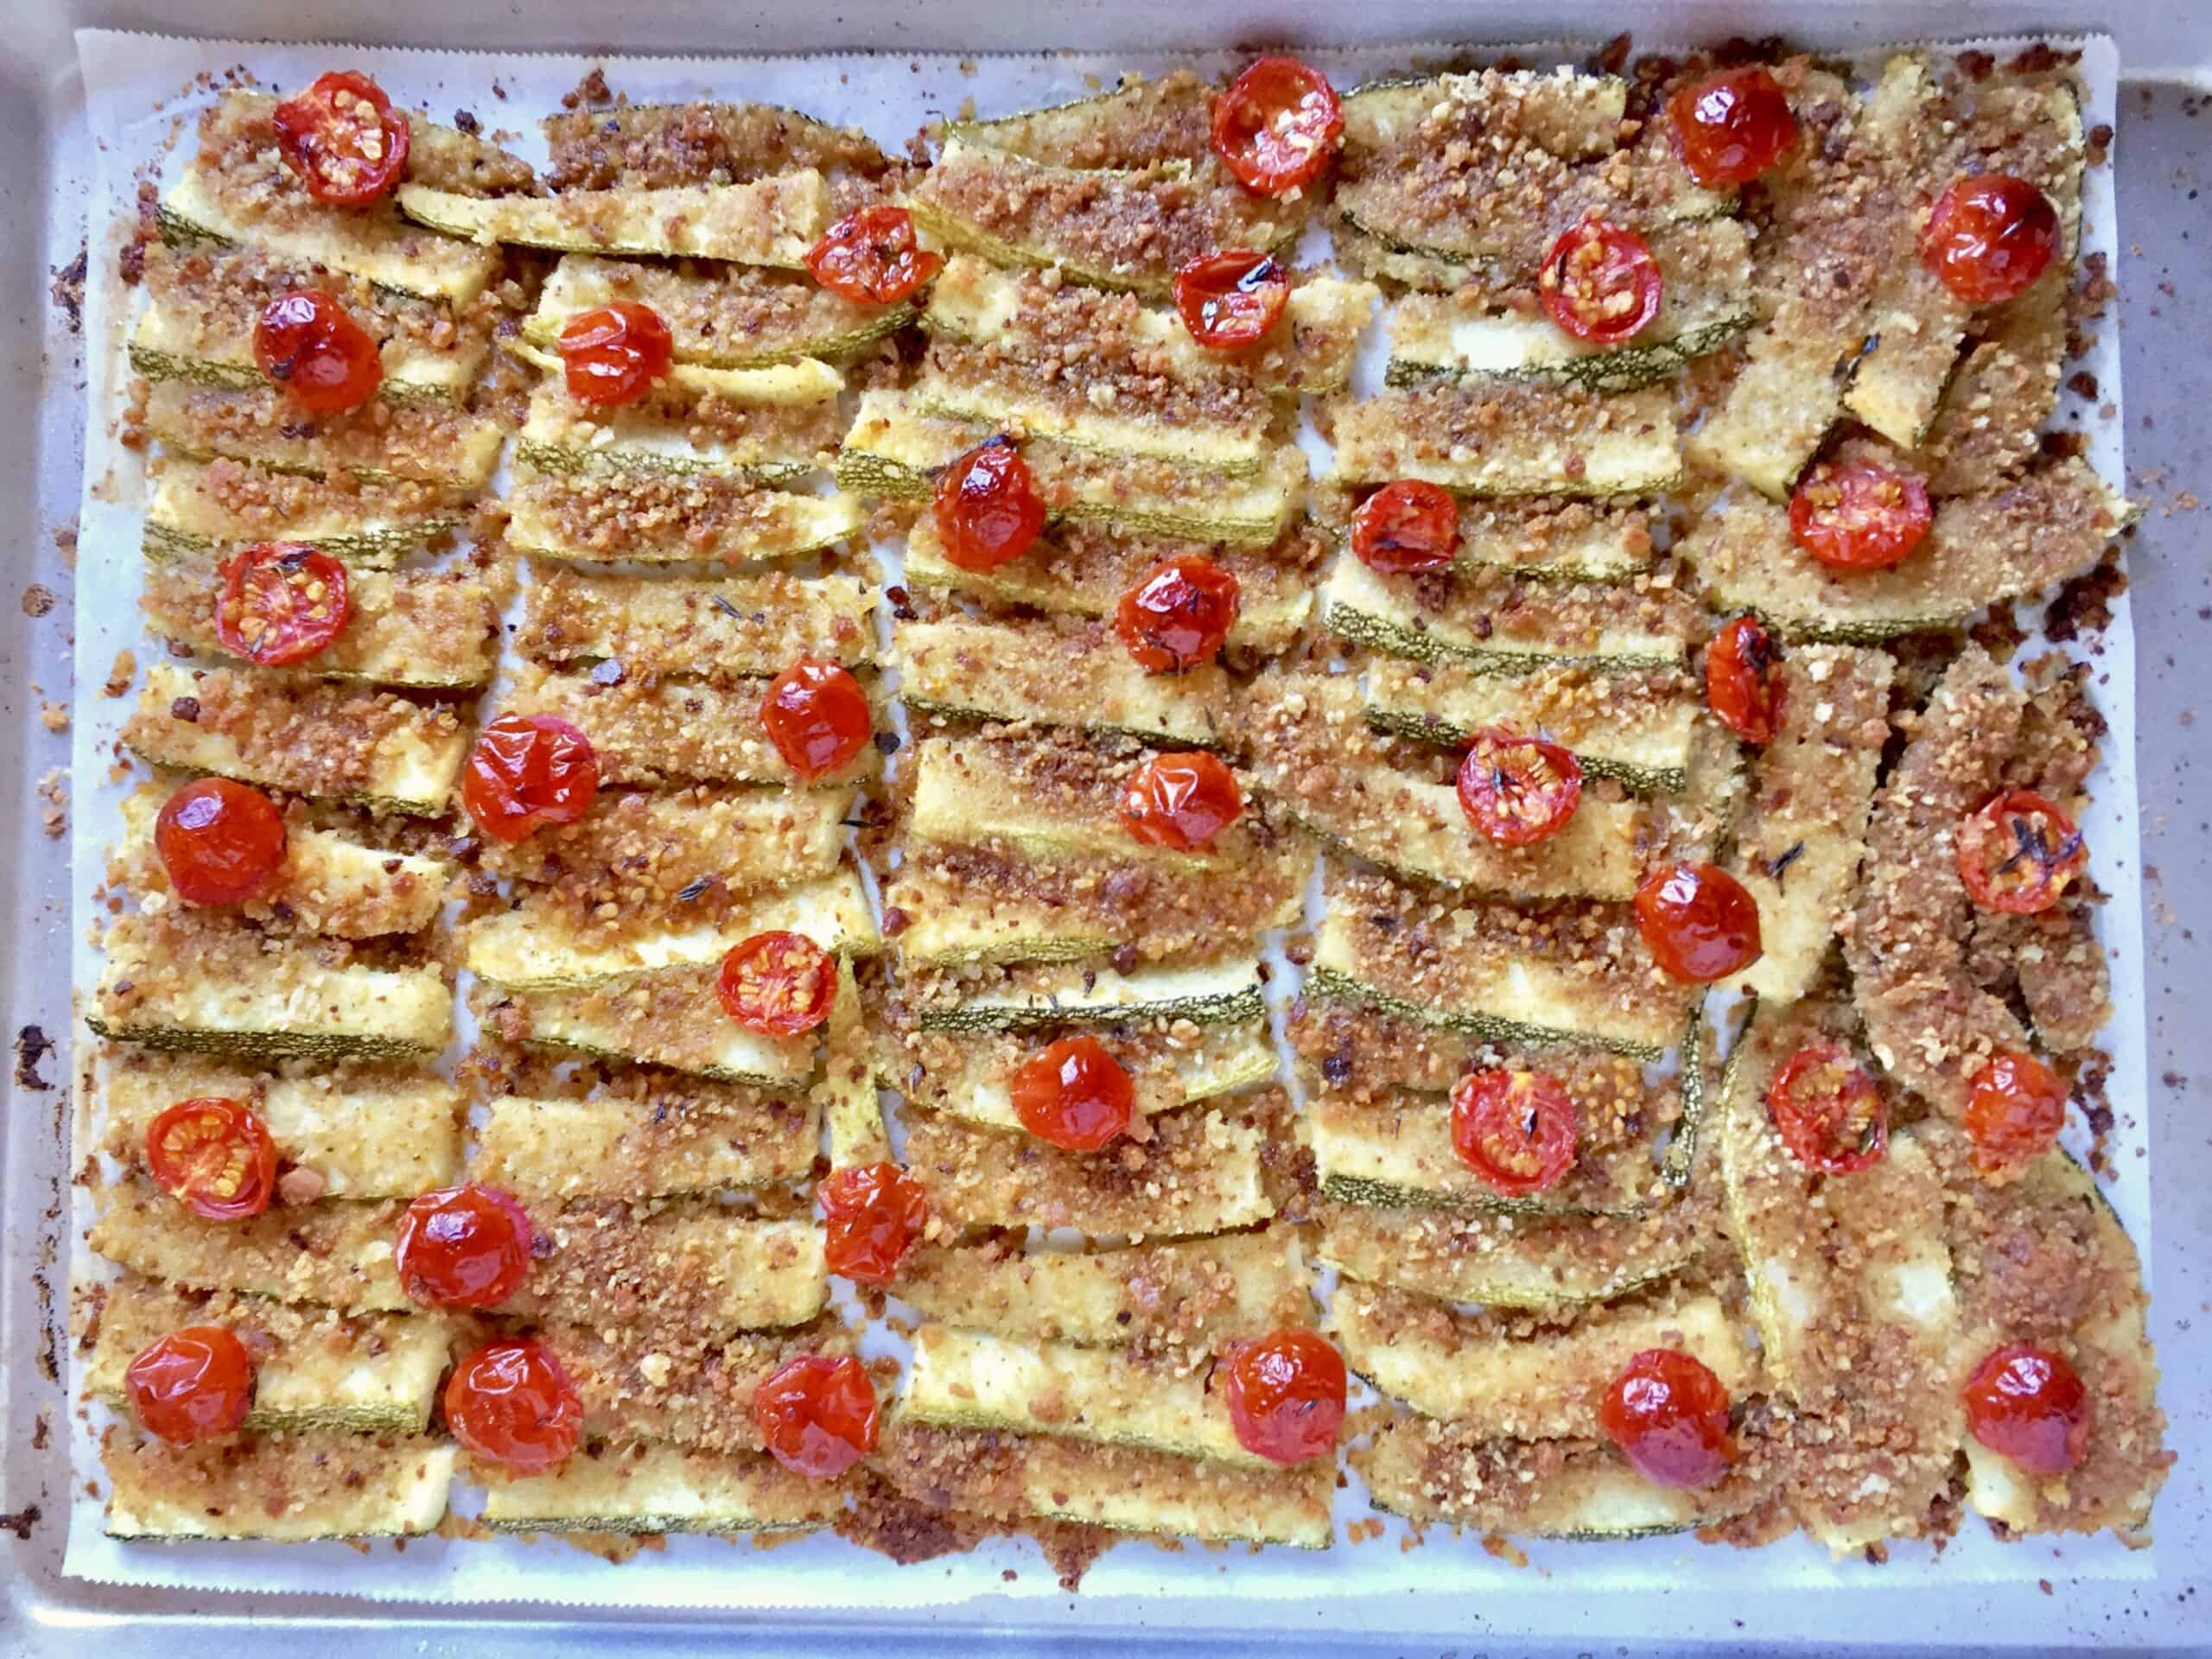 baked zucchini side dish on a tray